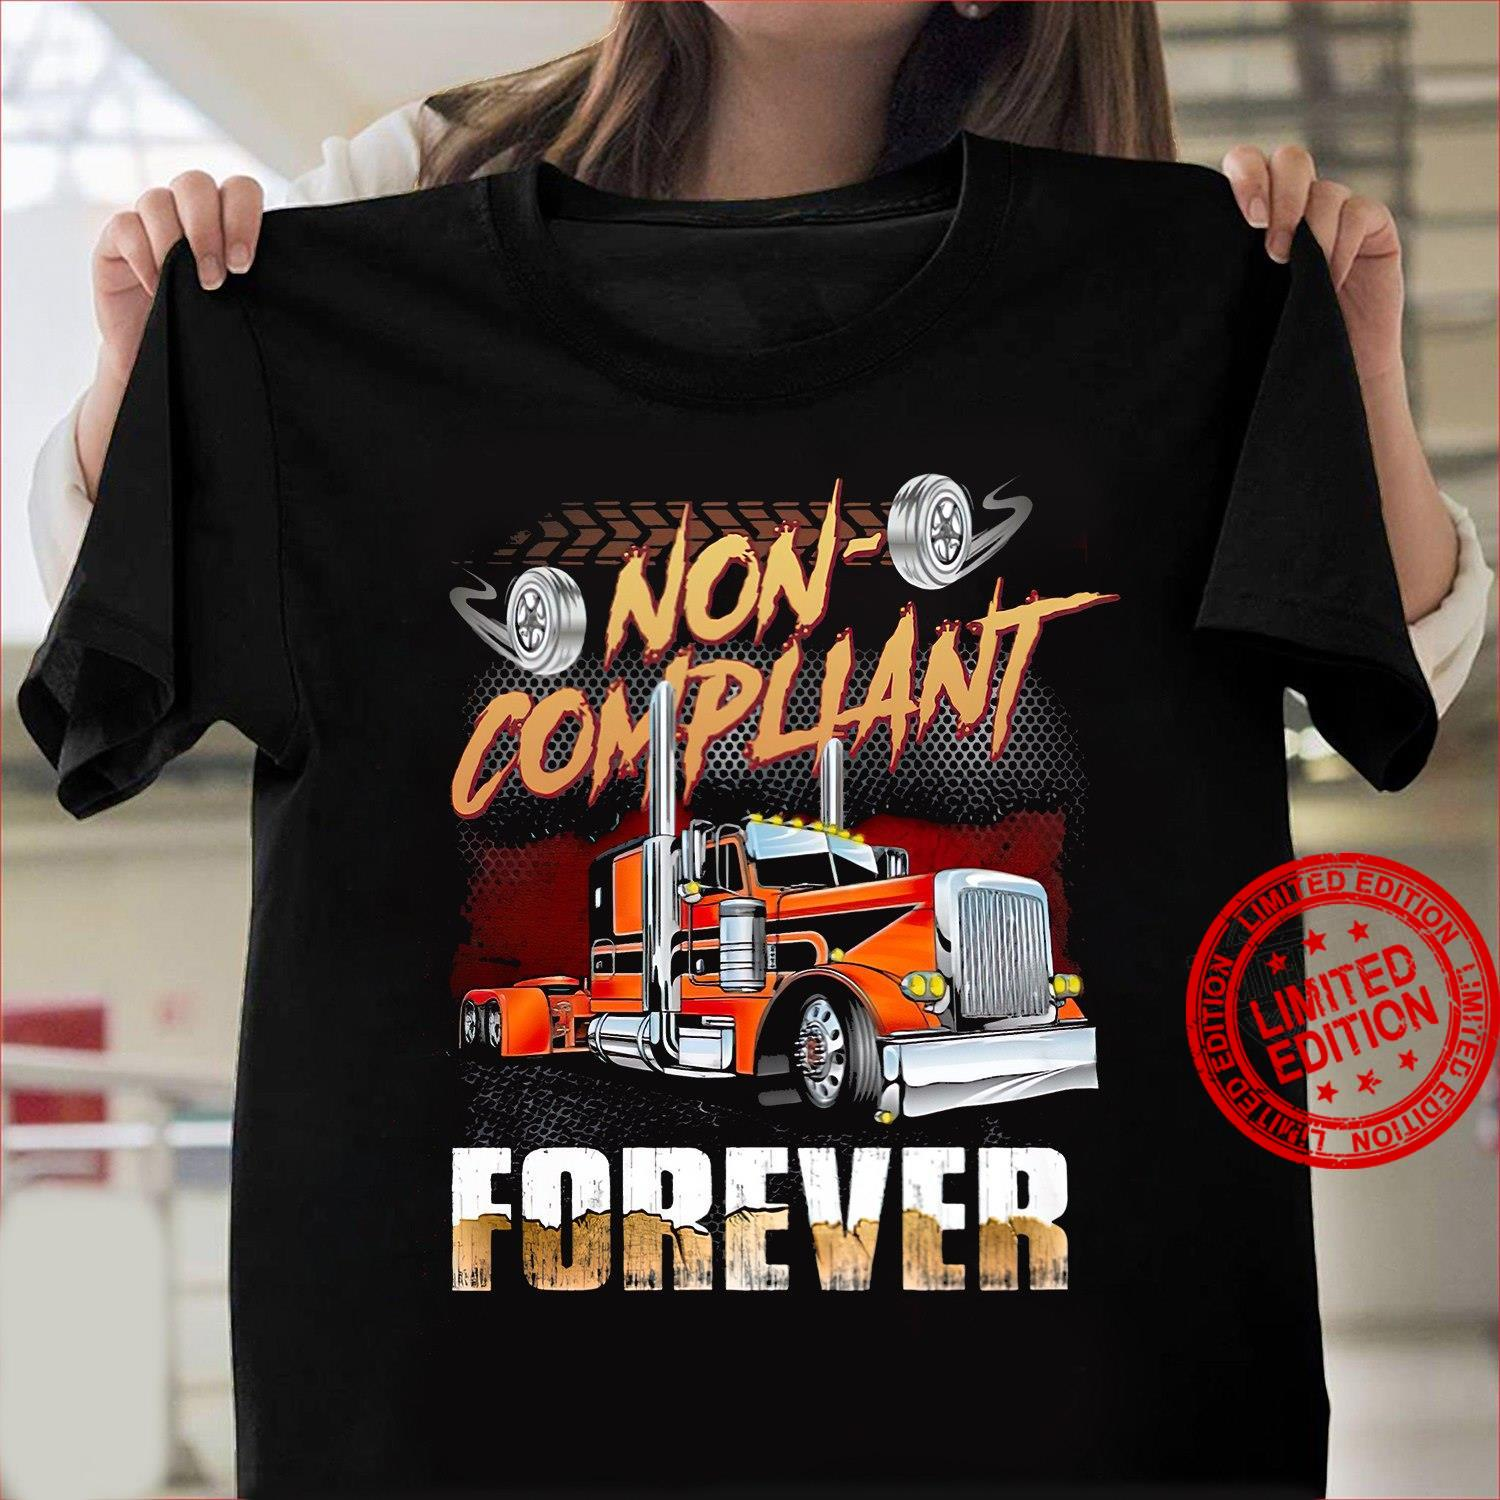 Non Compliant Forever Shirt